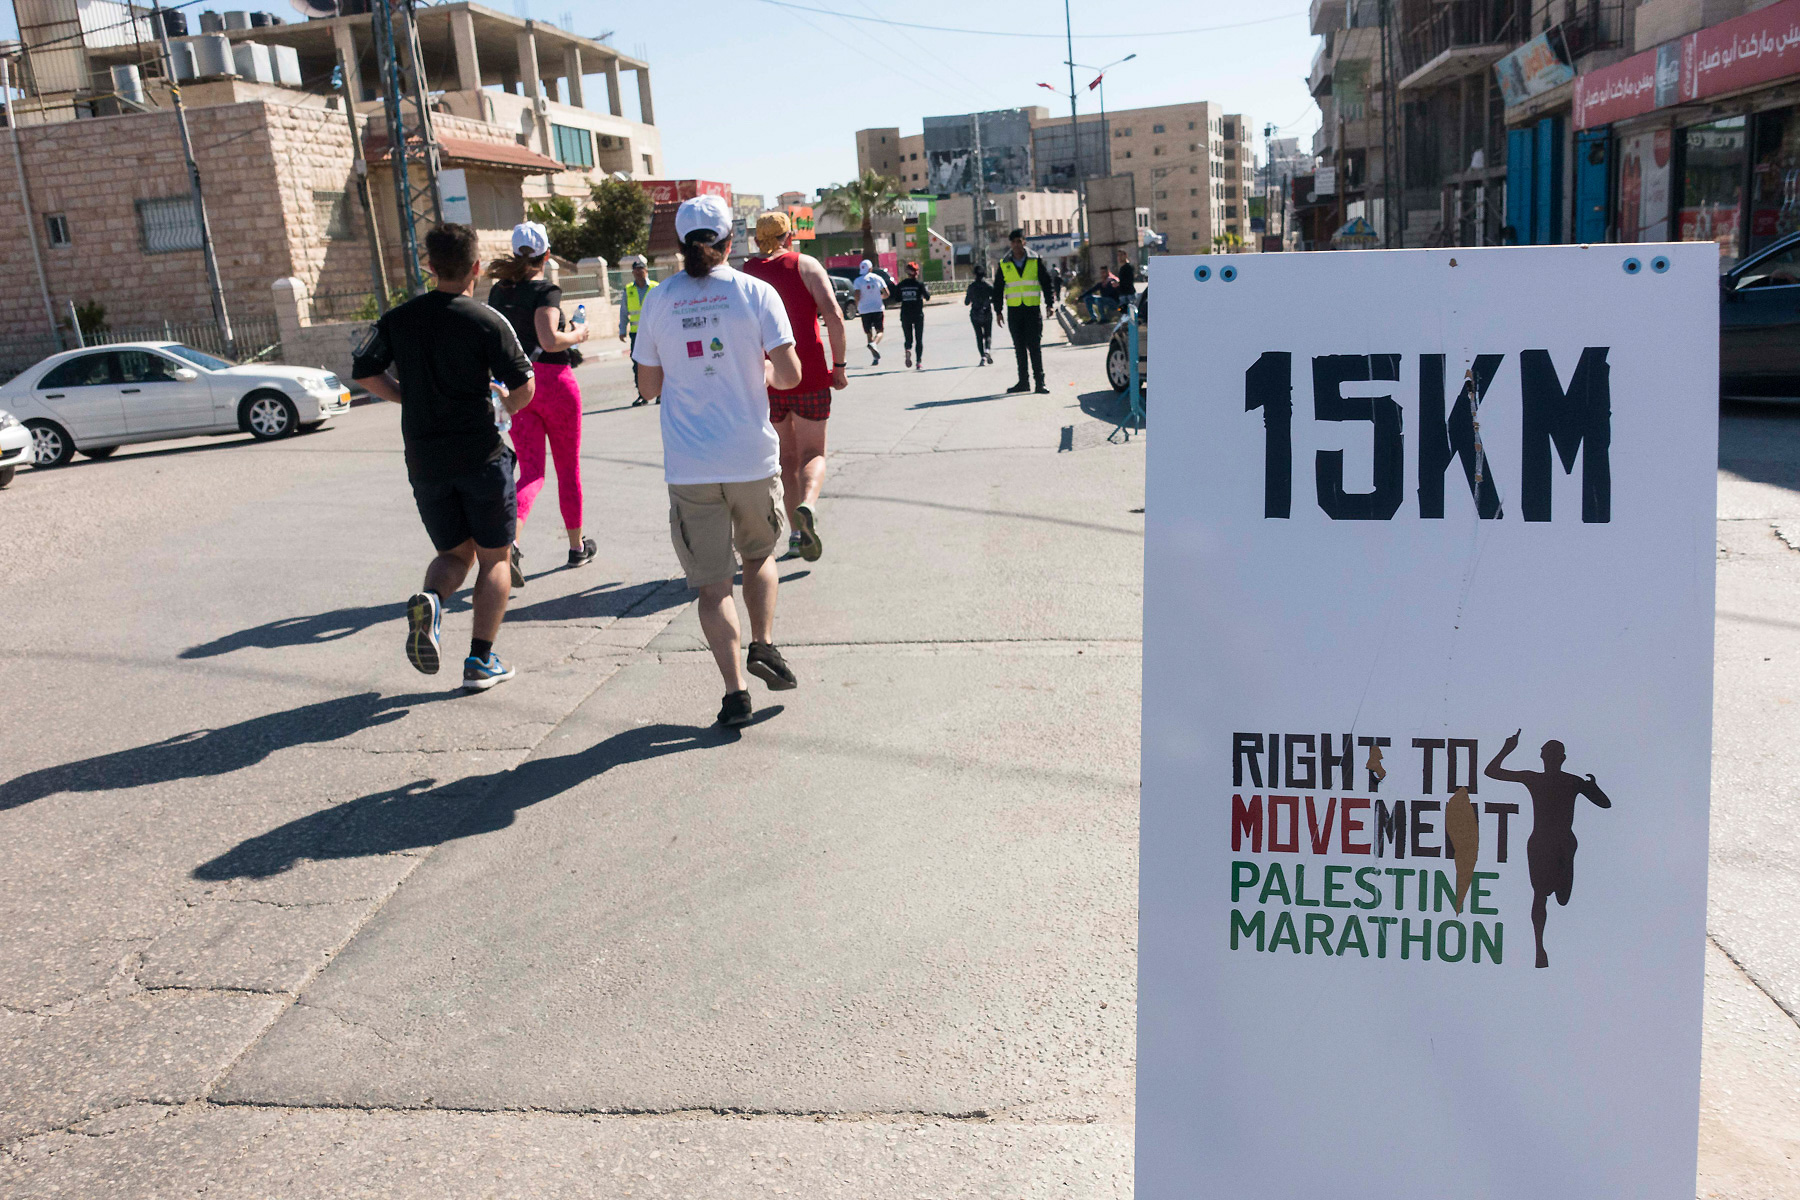 15km marker during the Right to Movement, Palestine Marathon 2016